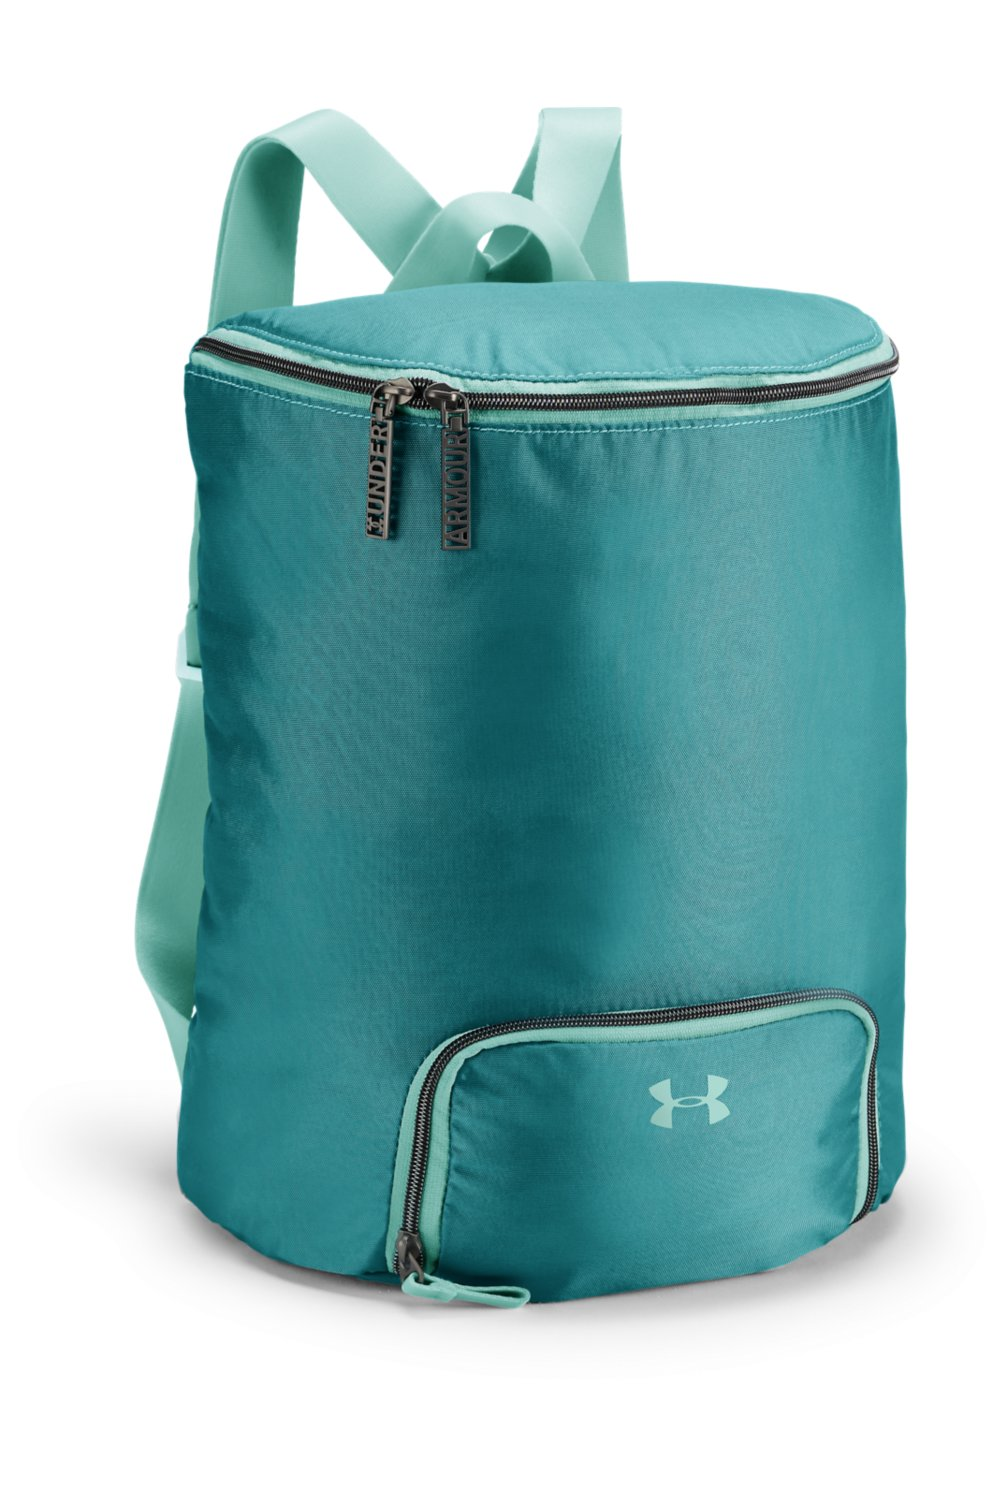 Under Armour rucsac turcoaz sport Midi Backpack